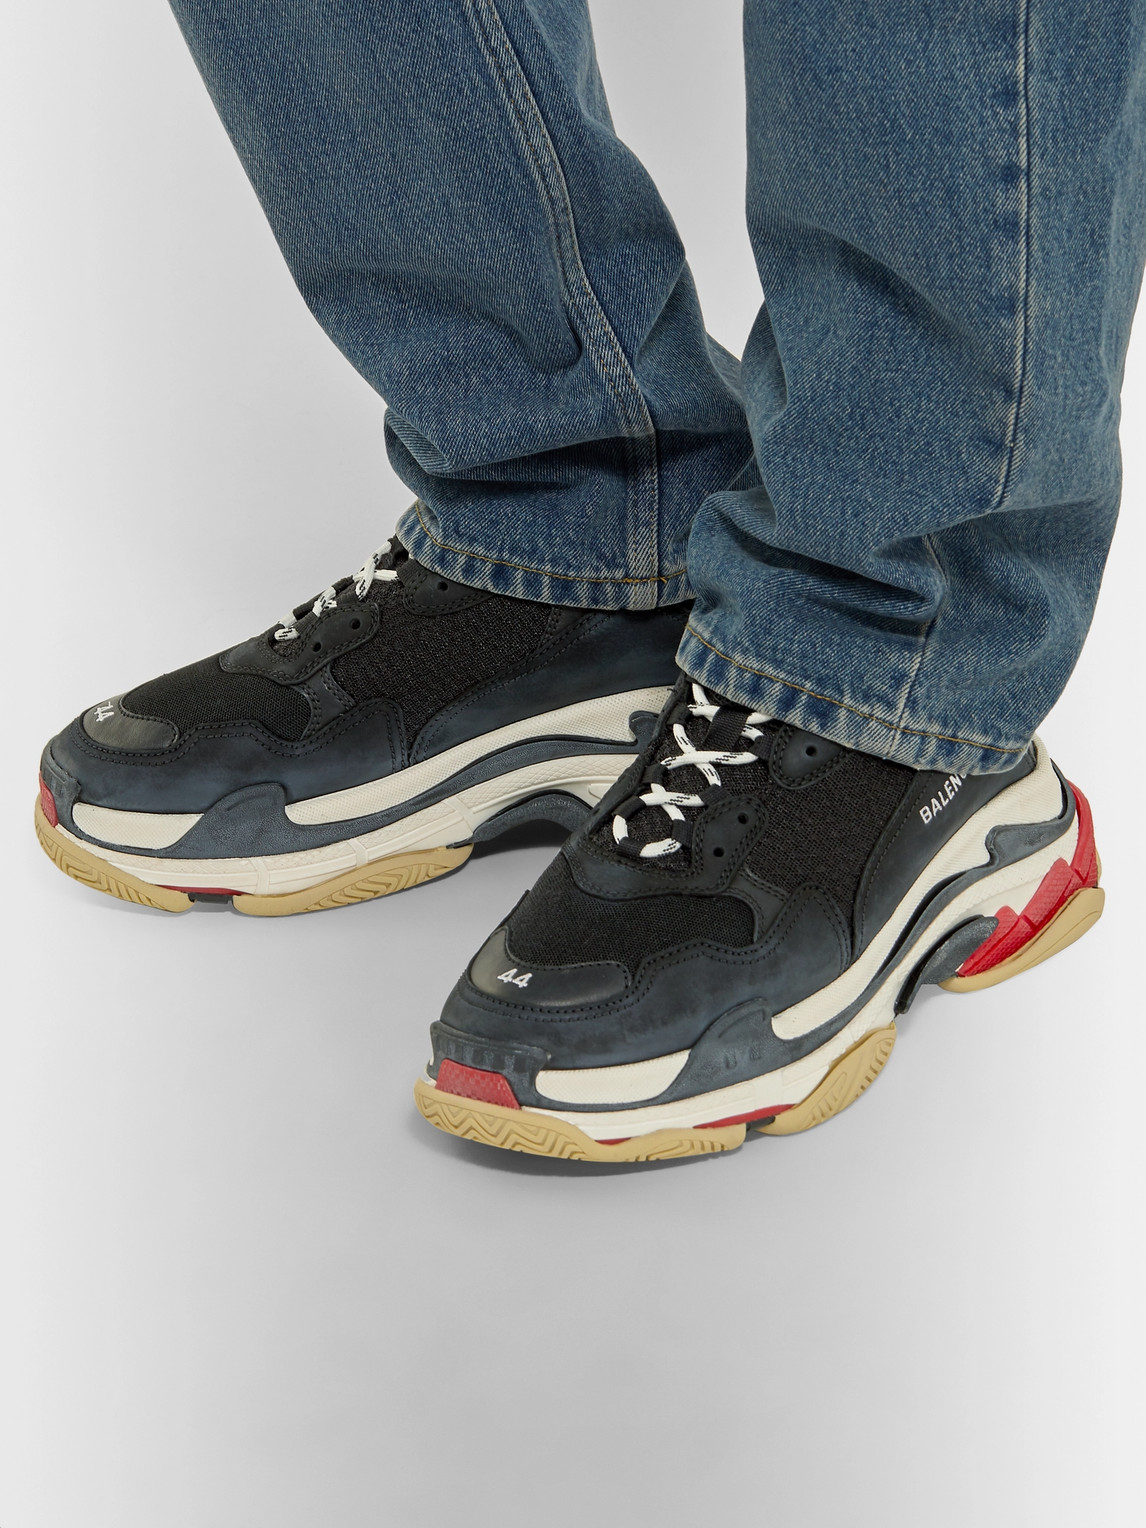 Balenciaga Sneakers TRIPLE S MESH, NUBUCK AND LEATHER SNEAKERS